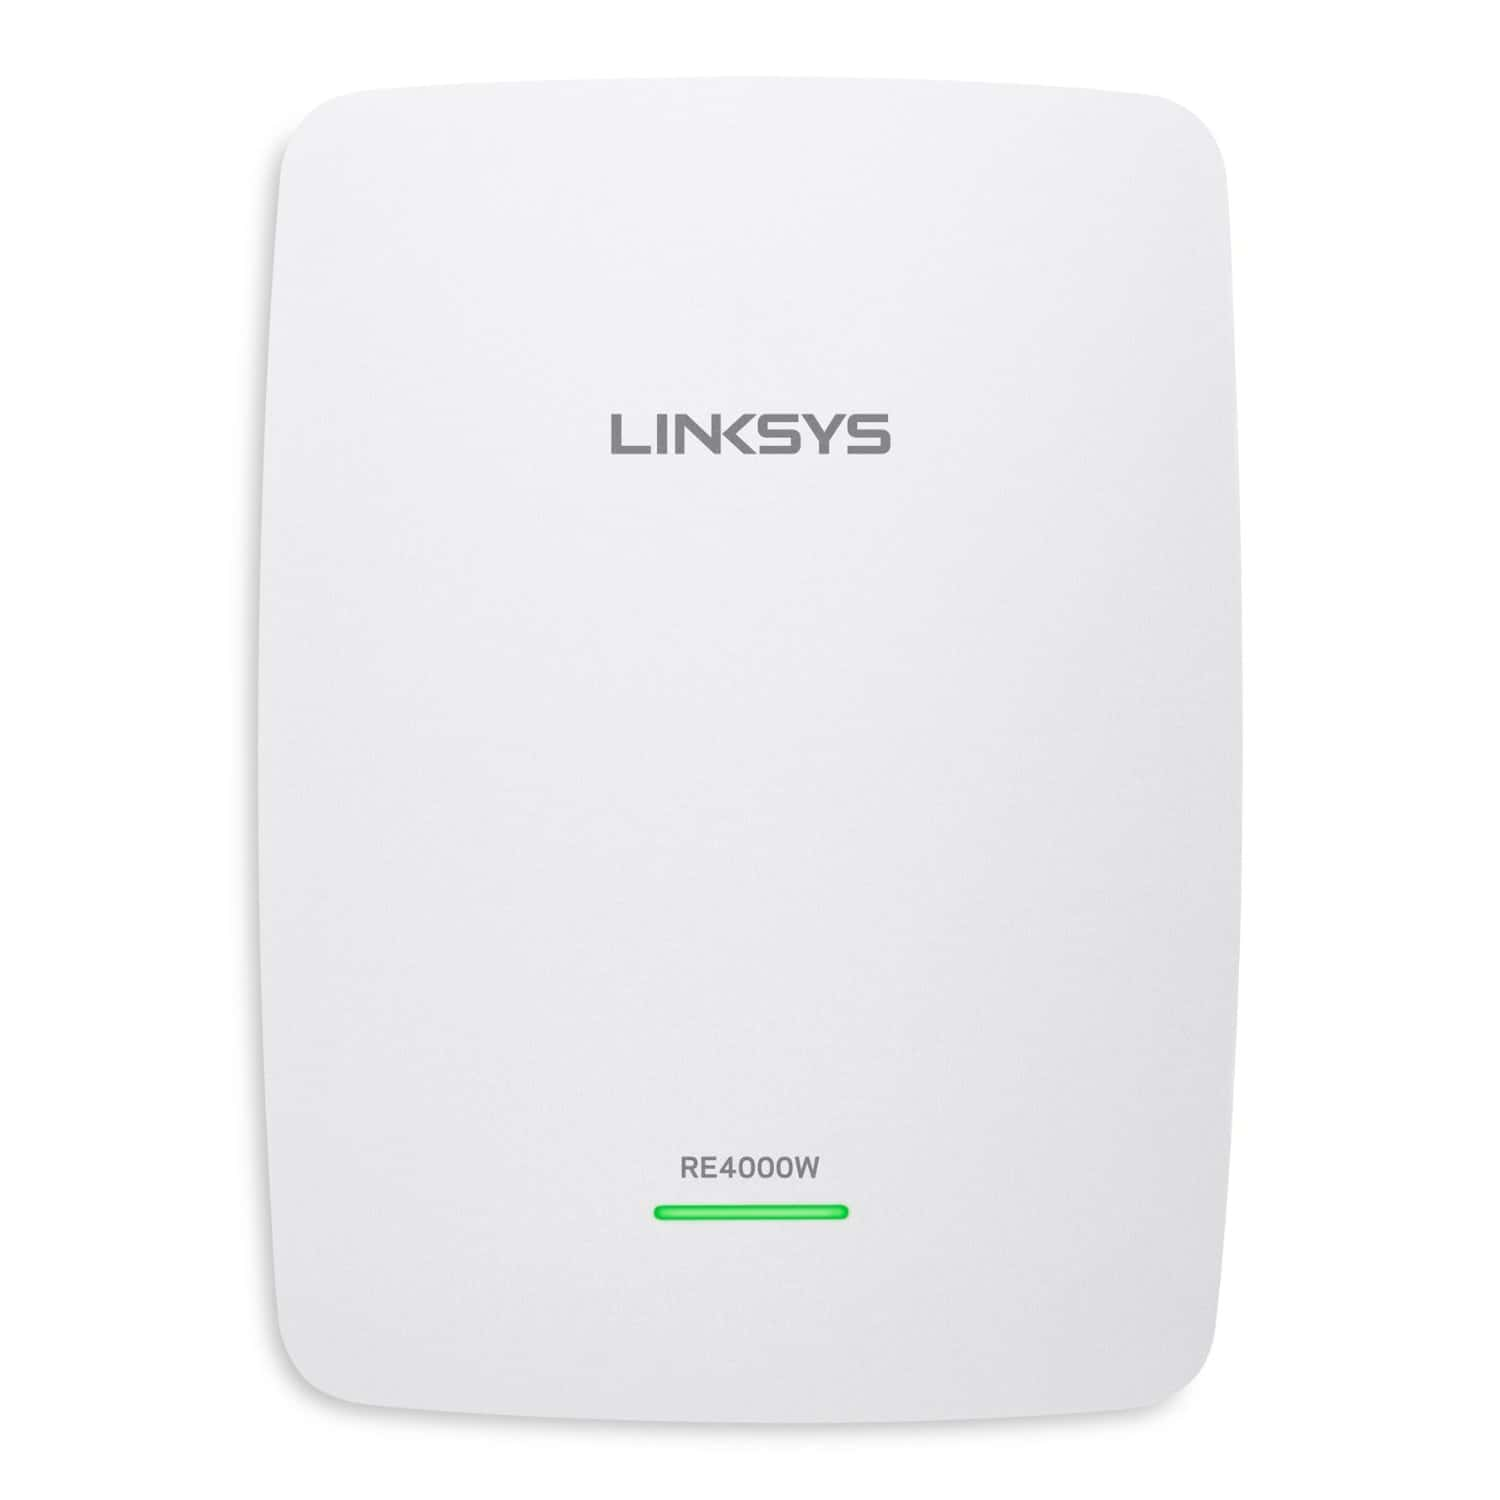 Linksys RE4000W Dual-Band Wireless-N Range Extender